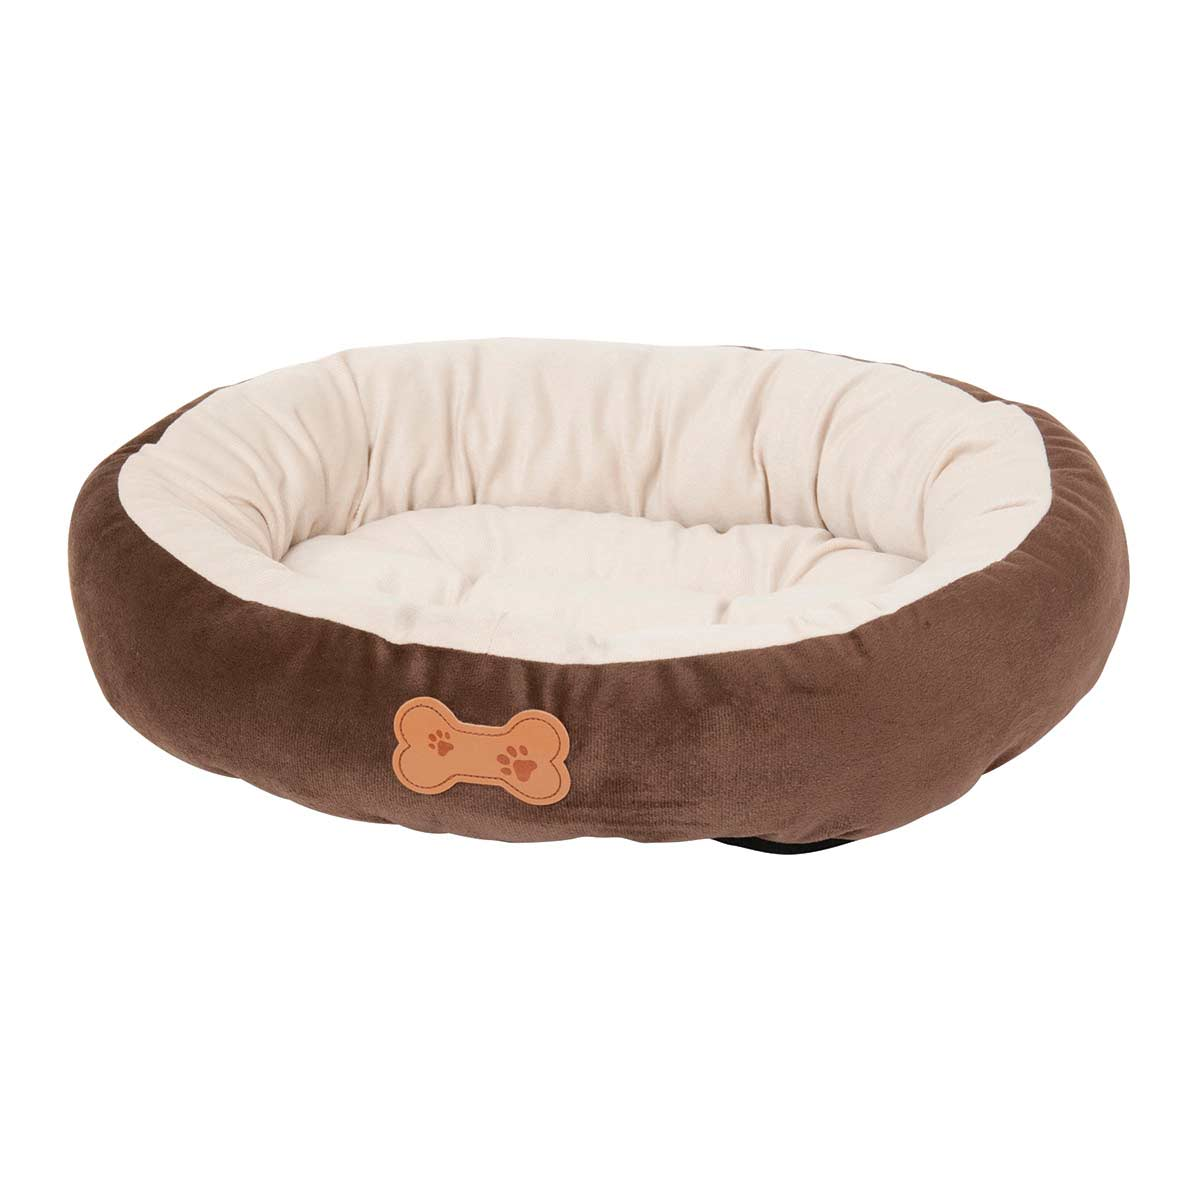 Brown and Cream Aspen Pet Oval Bed with Bone